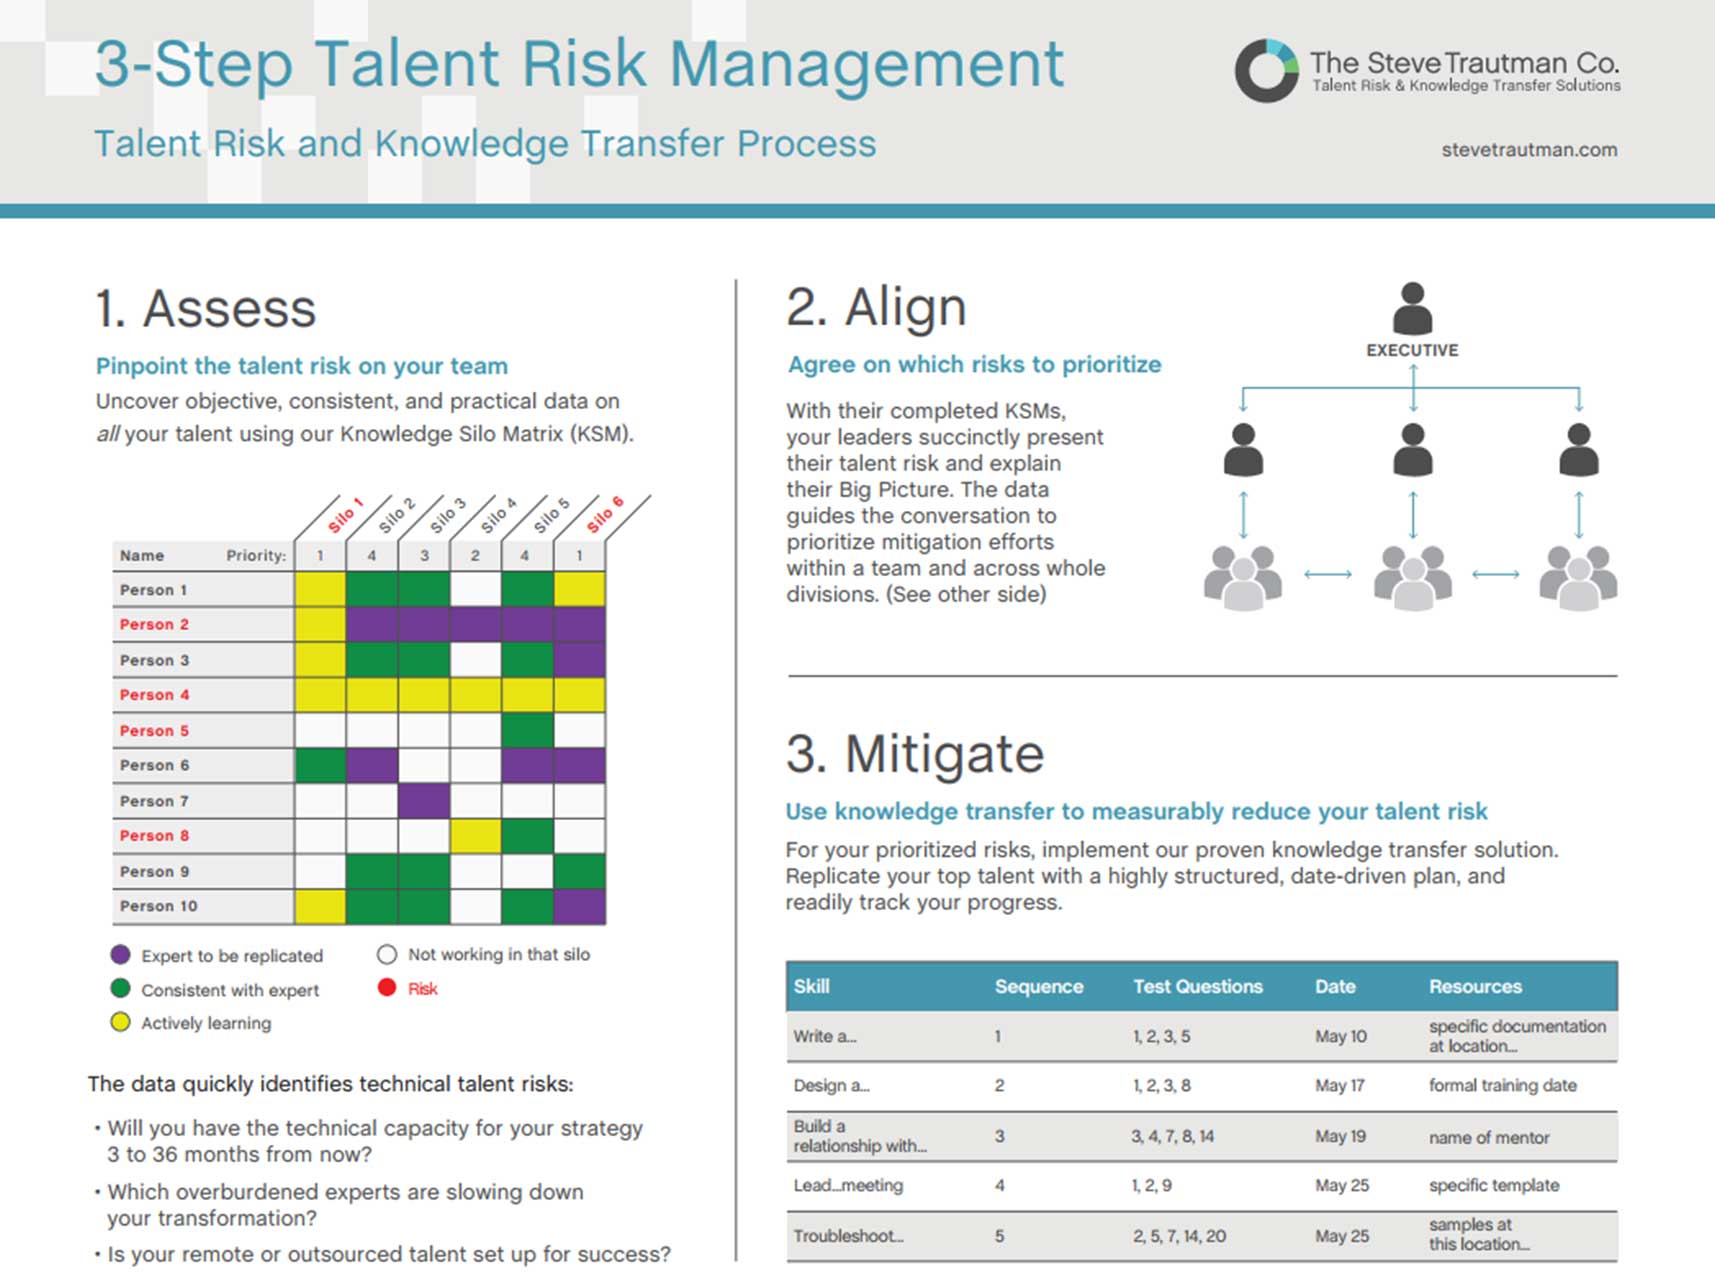 3-step Talent Risk Management Process Overview